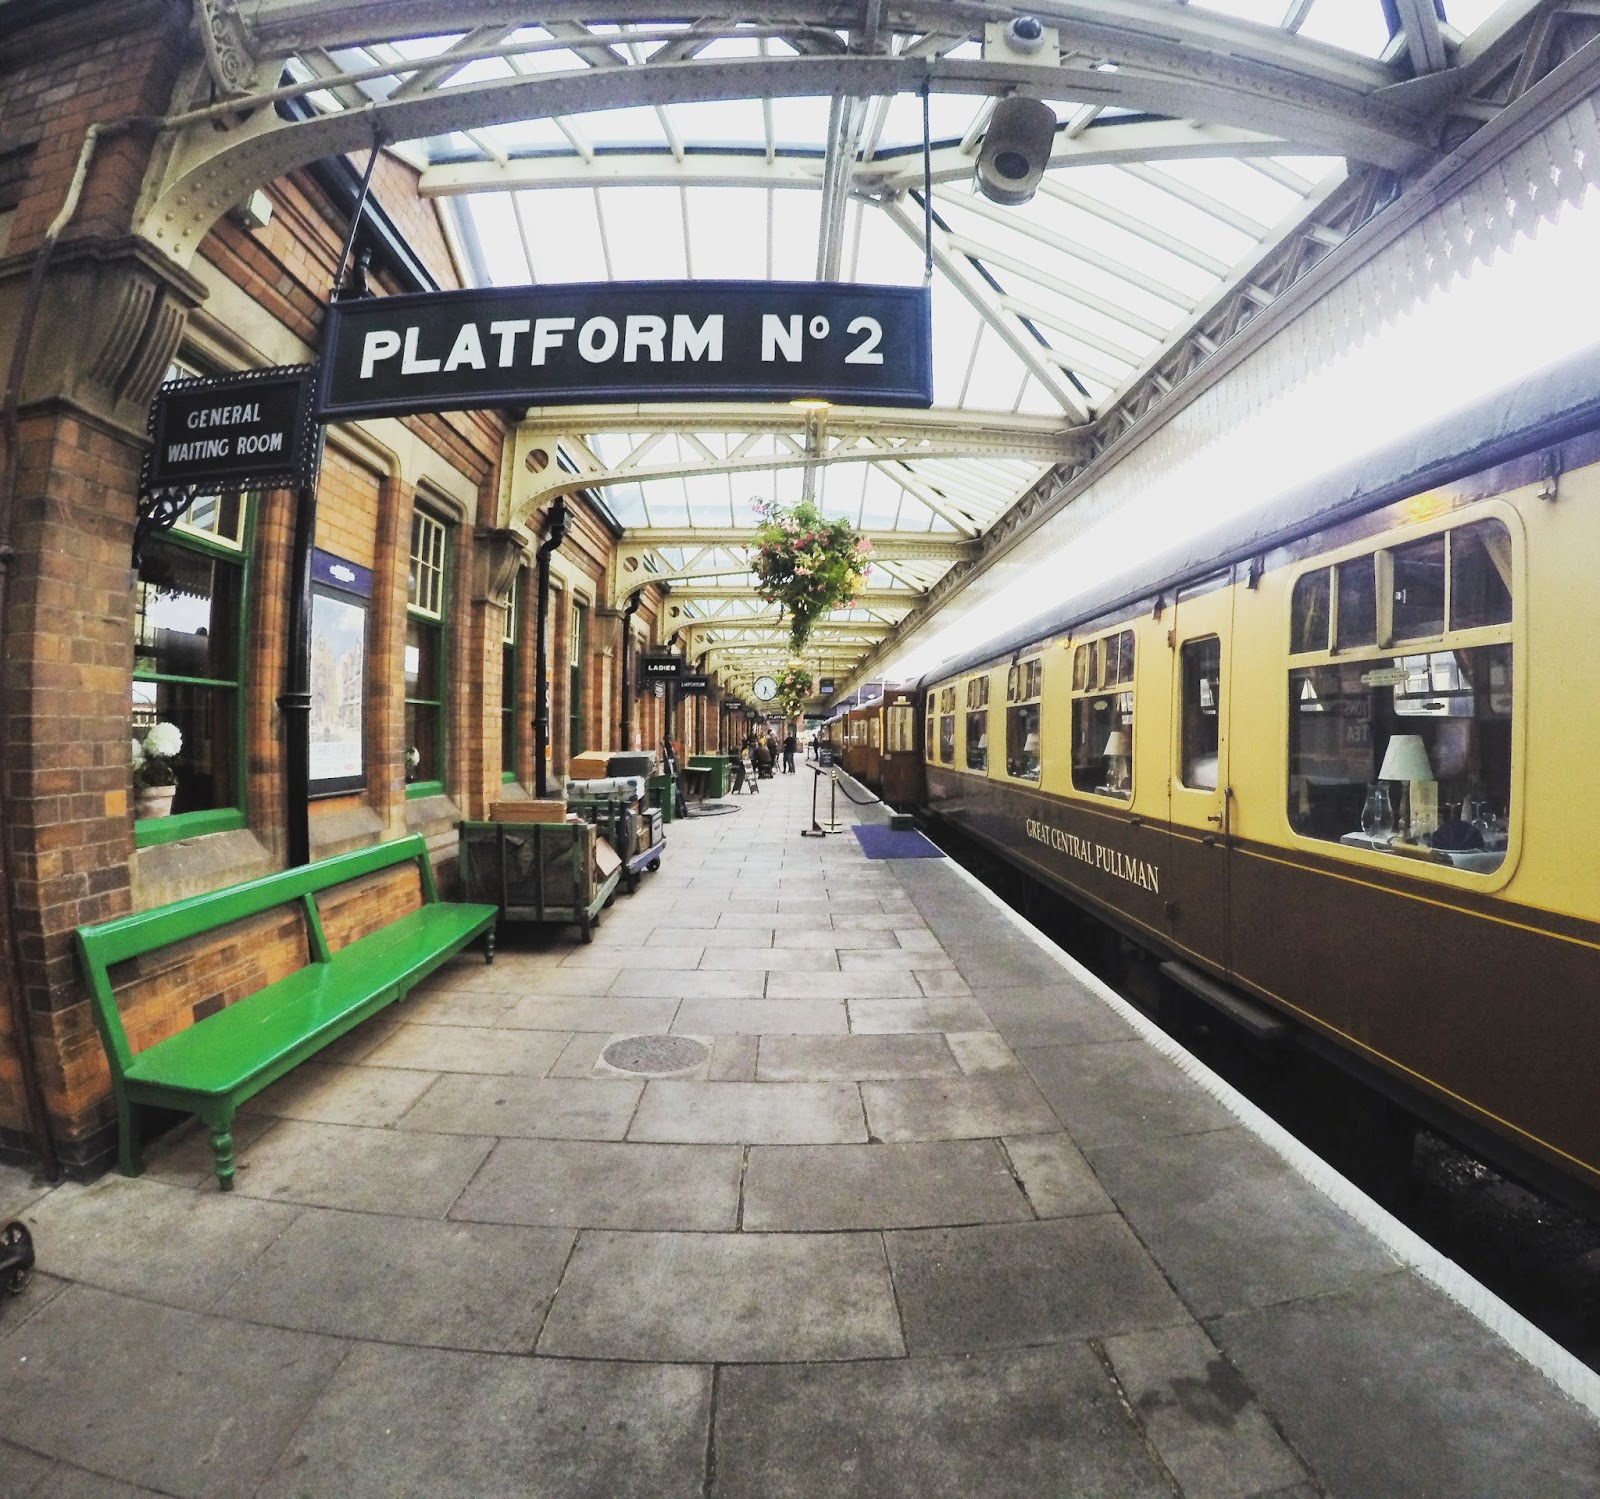 The departure point at Loughborough is a fine example of a 1950s station complete with wooden panelled booking office, a glass, metal and wood canopy, shop, ...